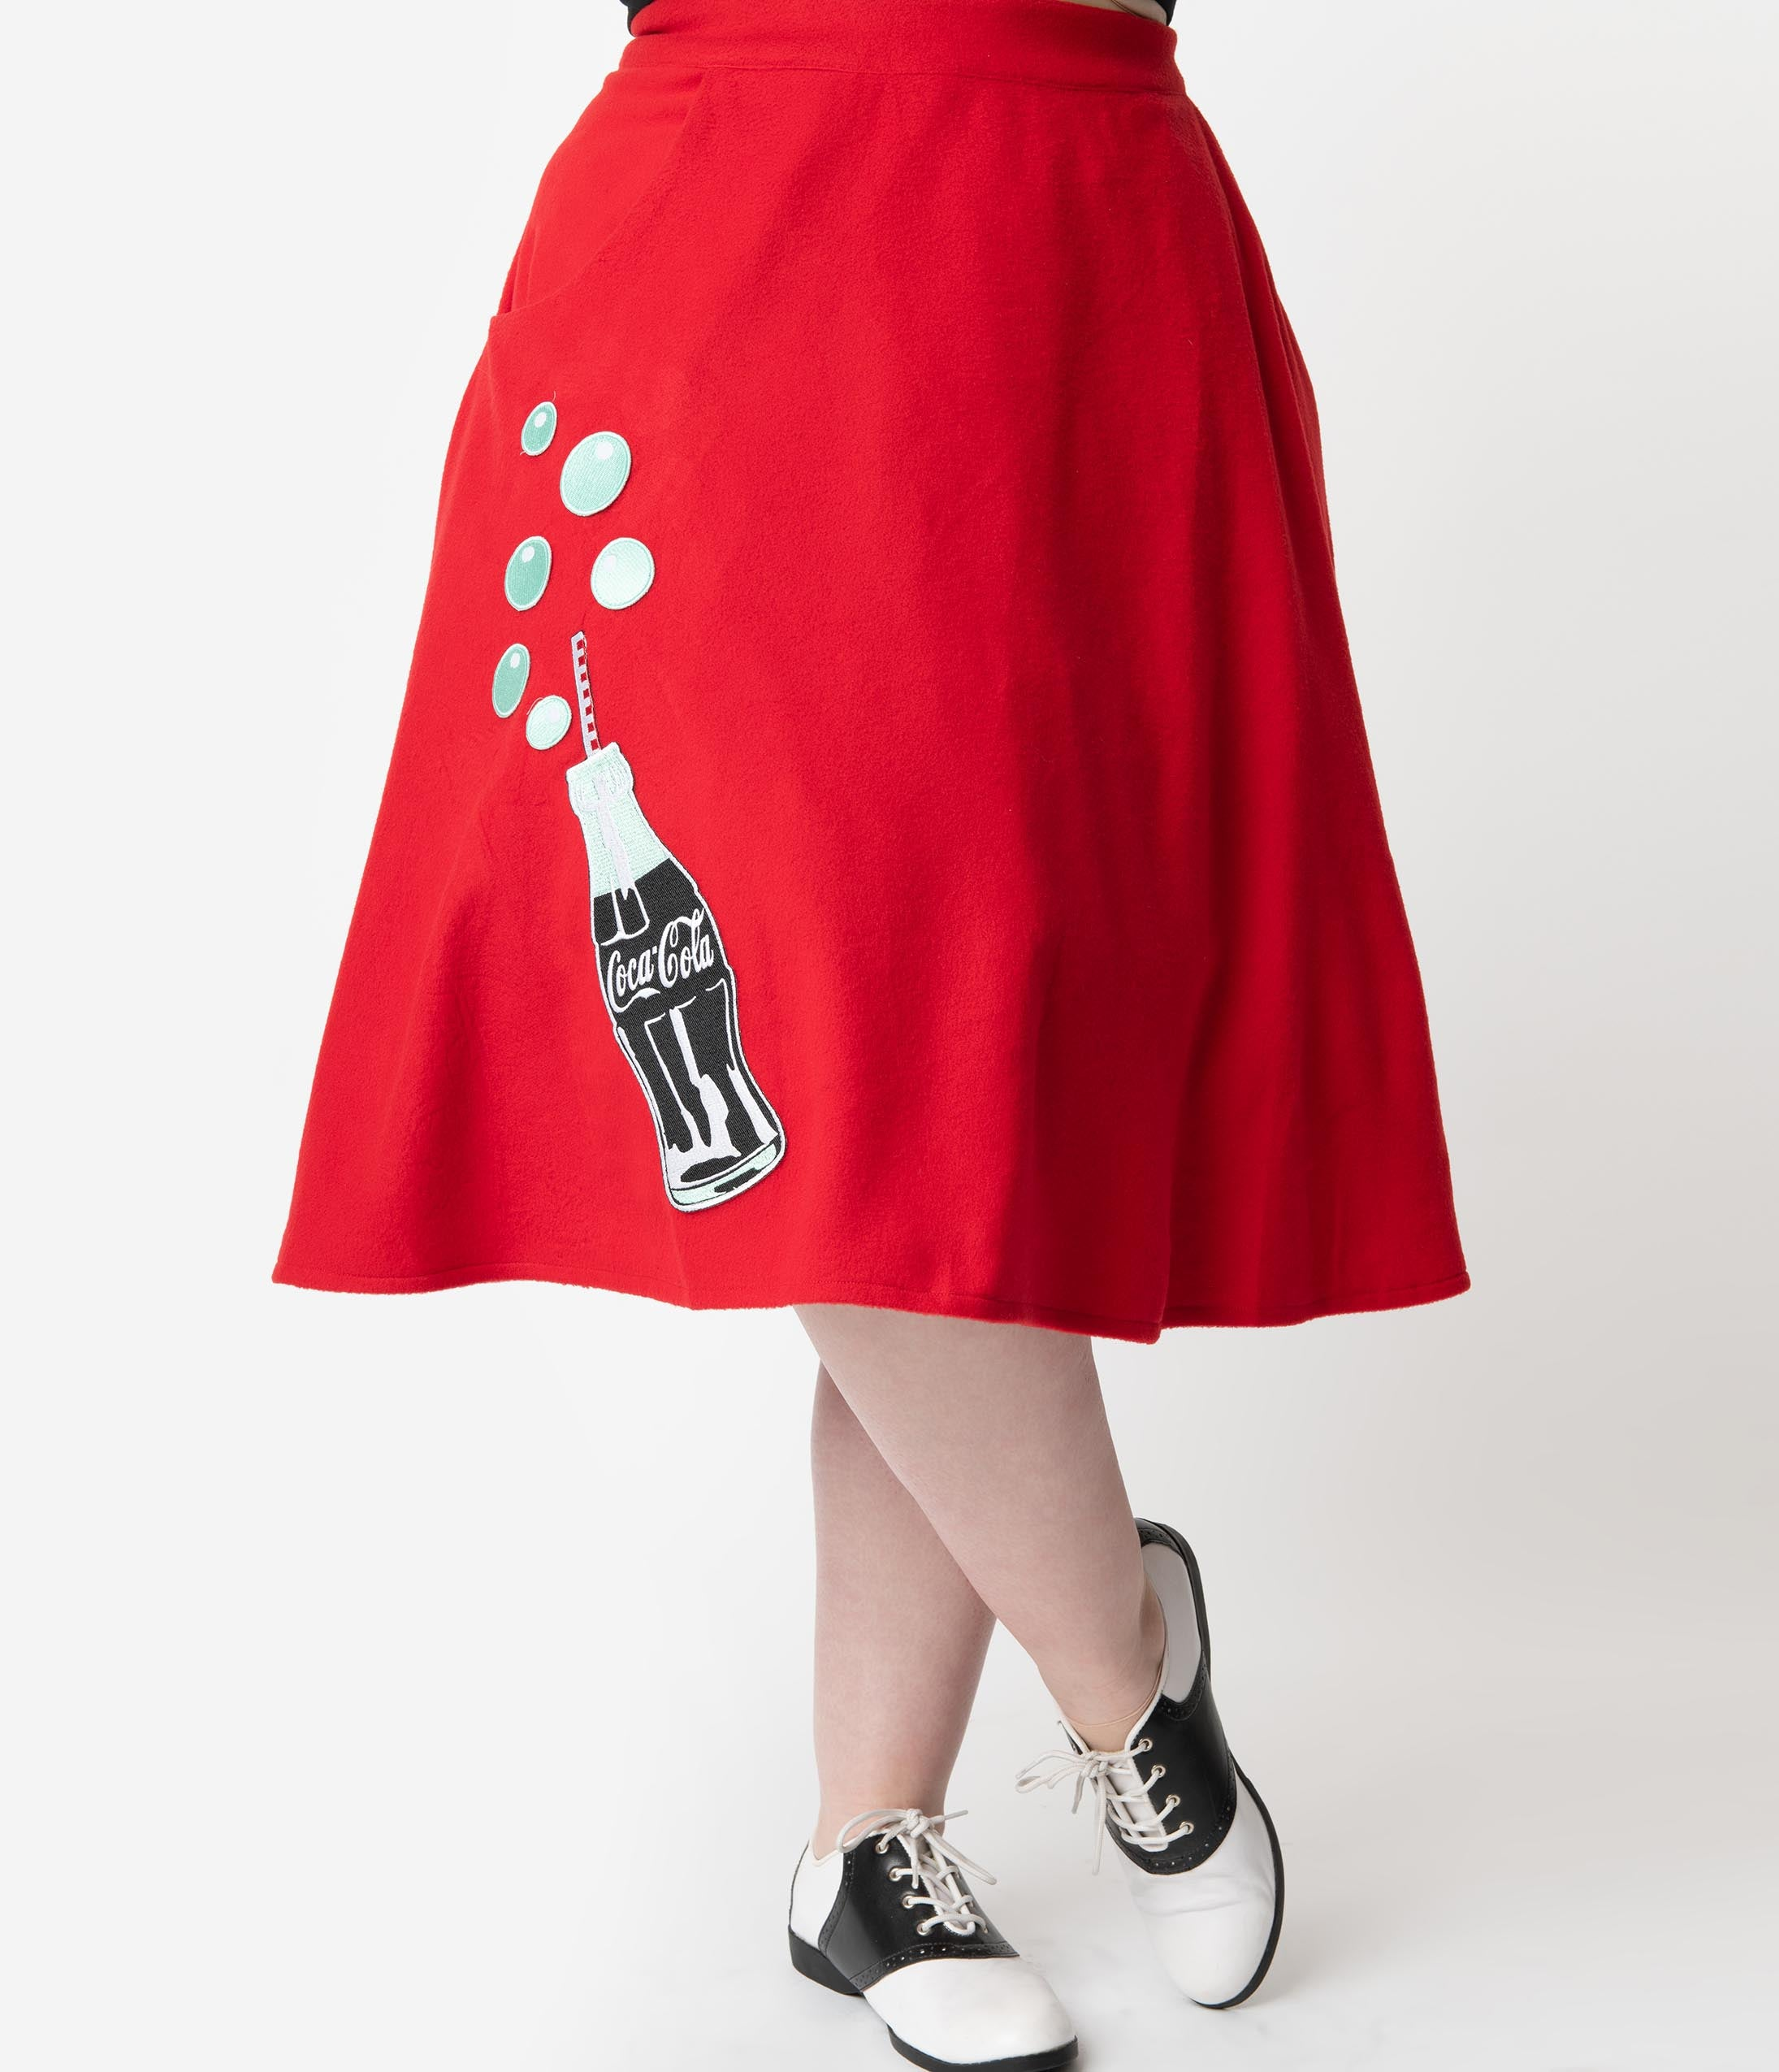 1d703eb1f Coca-Cola Collection by Unique Vintage Plus Size 1950s Red Cola Bottle  Bubbly Swing Skirt